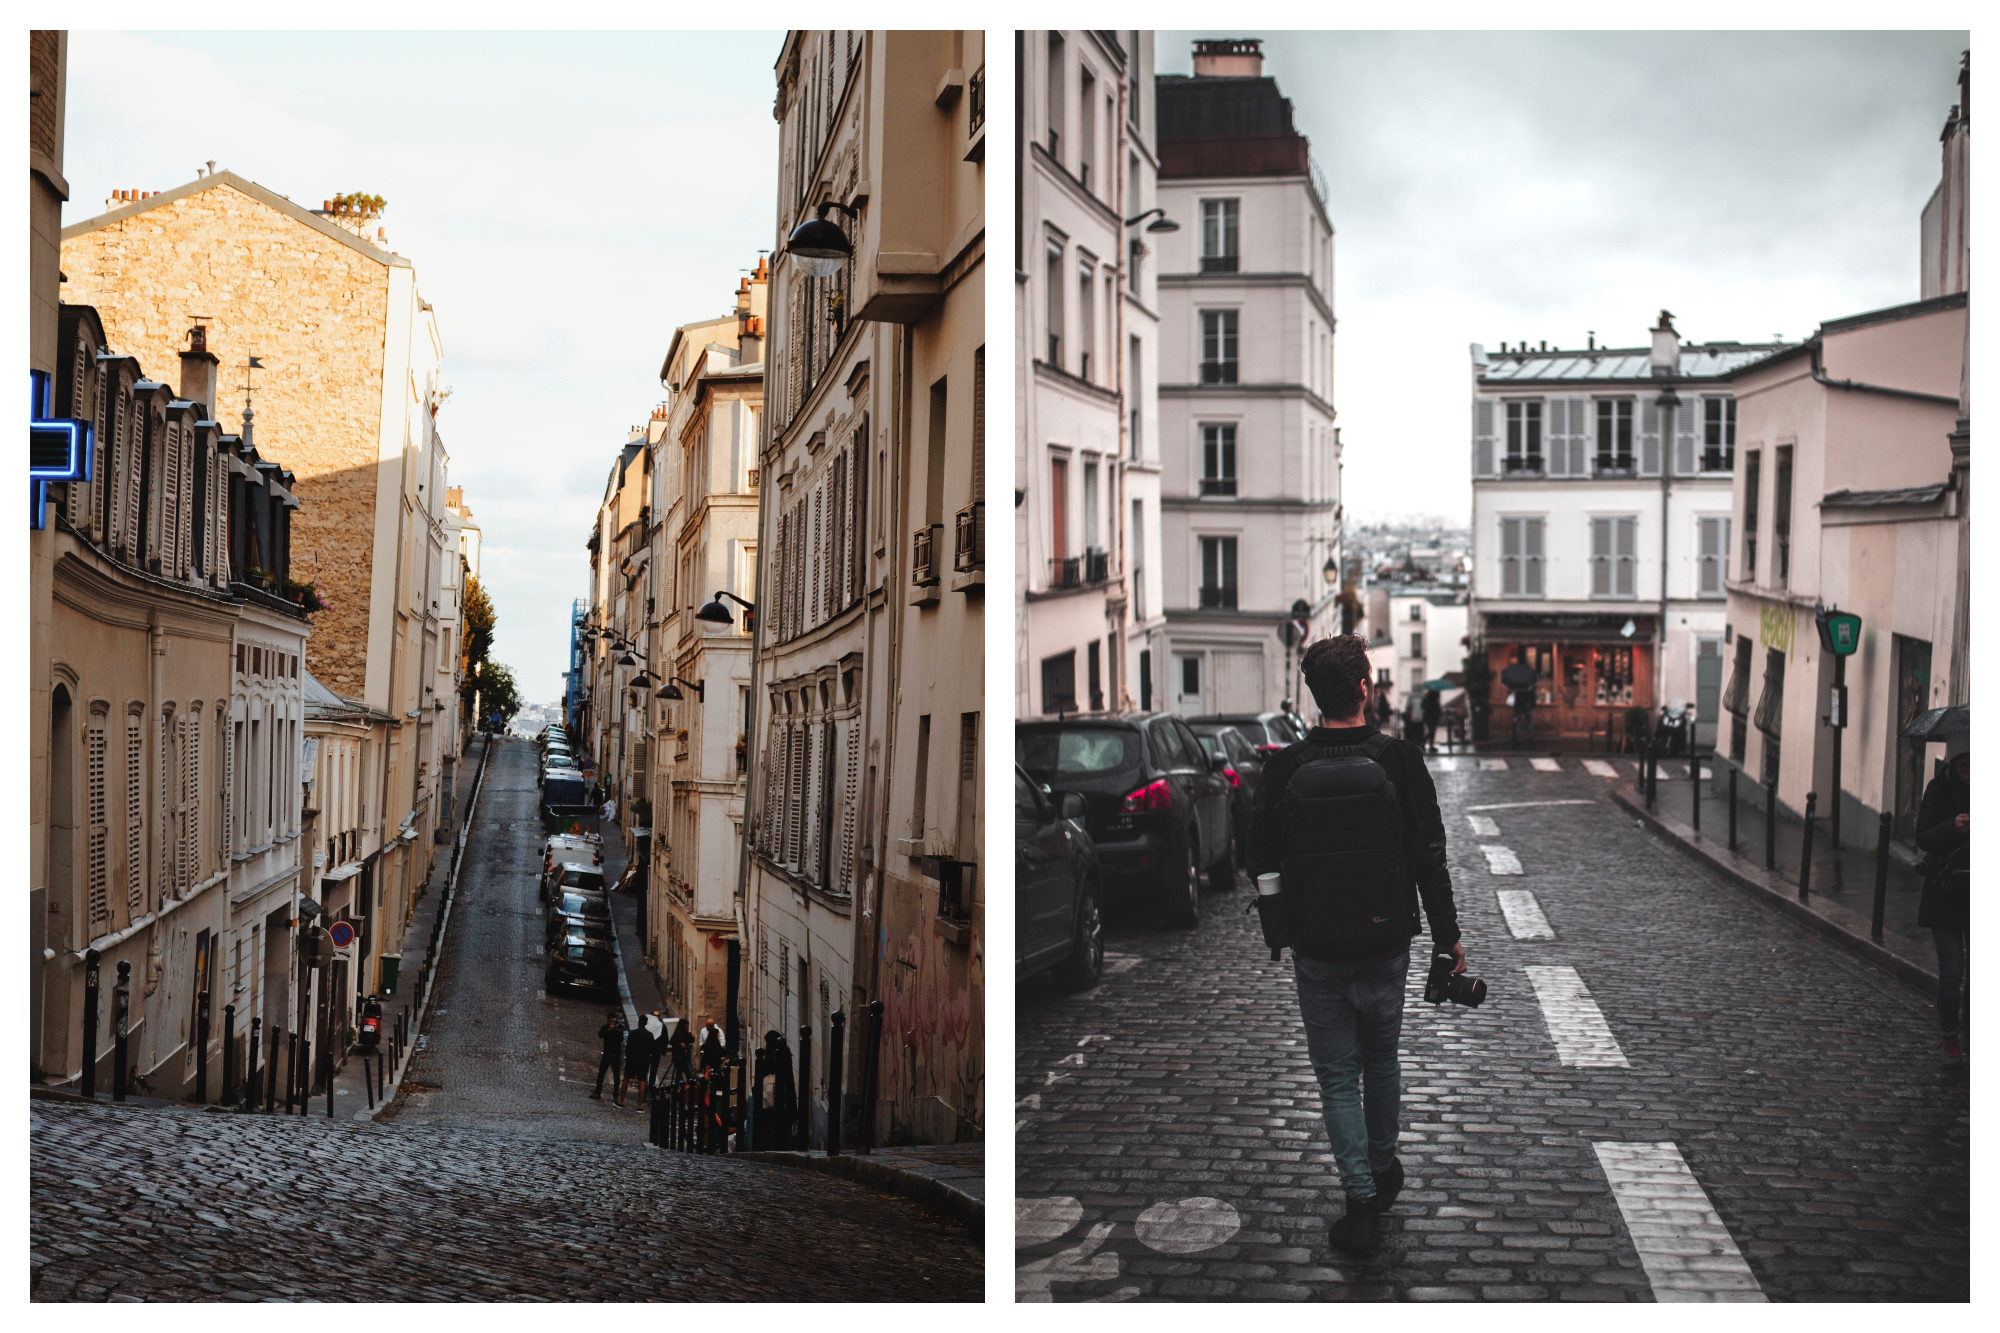 A street scene of Montmartre with a scenic curve in the road lined by crooked houses (left) and cobblestone streets of Montmartre with a man seen strolling from the back (right).